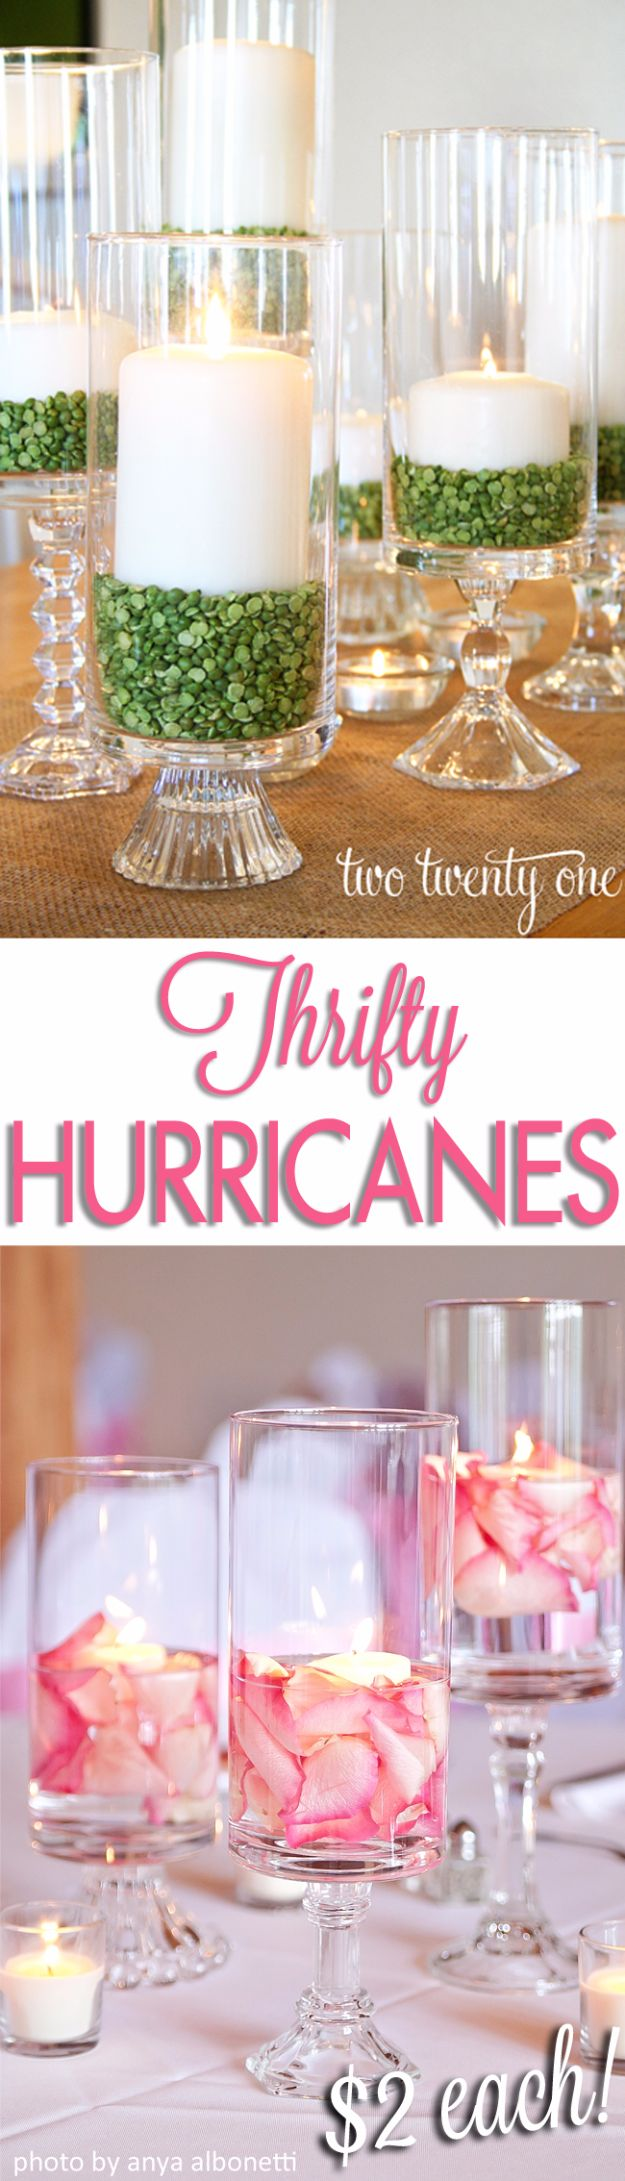 DIY Wedding Decor - Thrifty Hurricanes - Easy and Cheap Project Ideas with Things Found in Dollar Stores - Simple and Creative Backdrops for Receptions On A Budget - Rustic, Elegant, and Vintage Paper Ideas for Centerpieces, and Vases